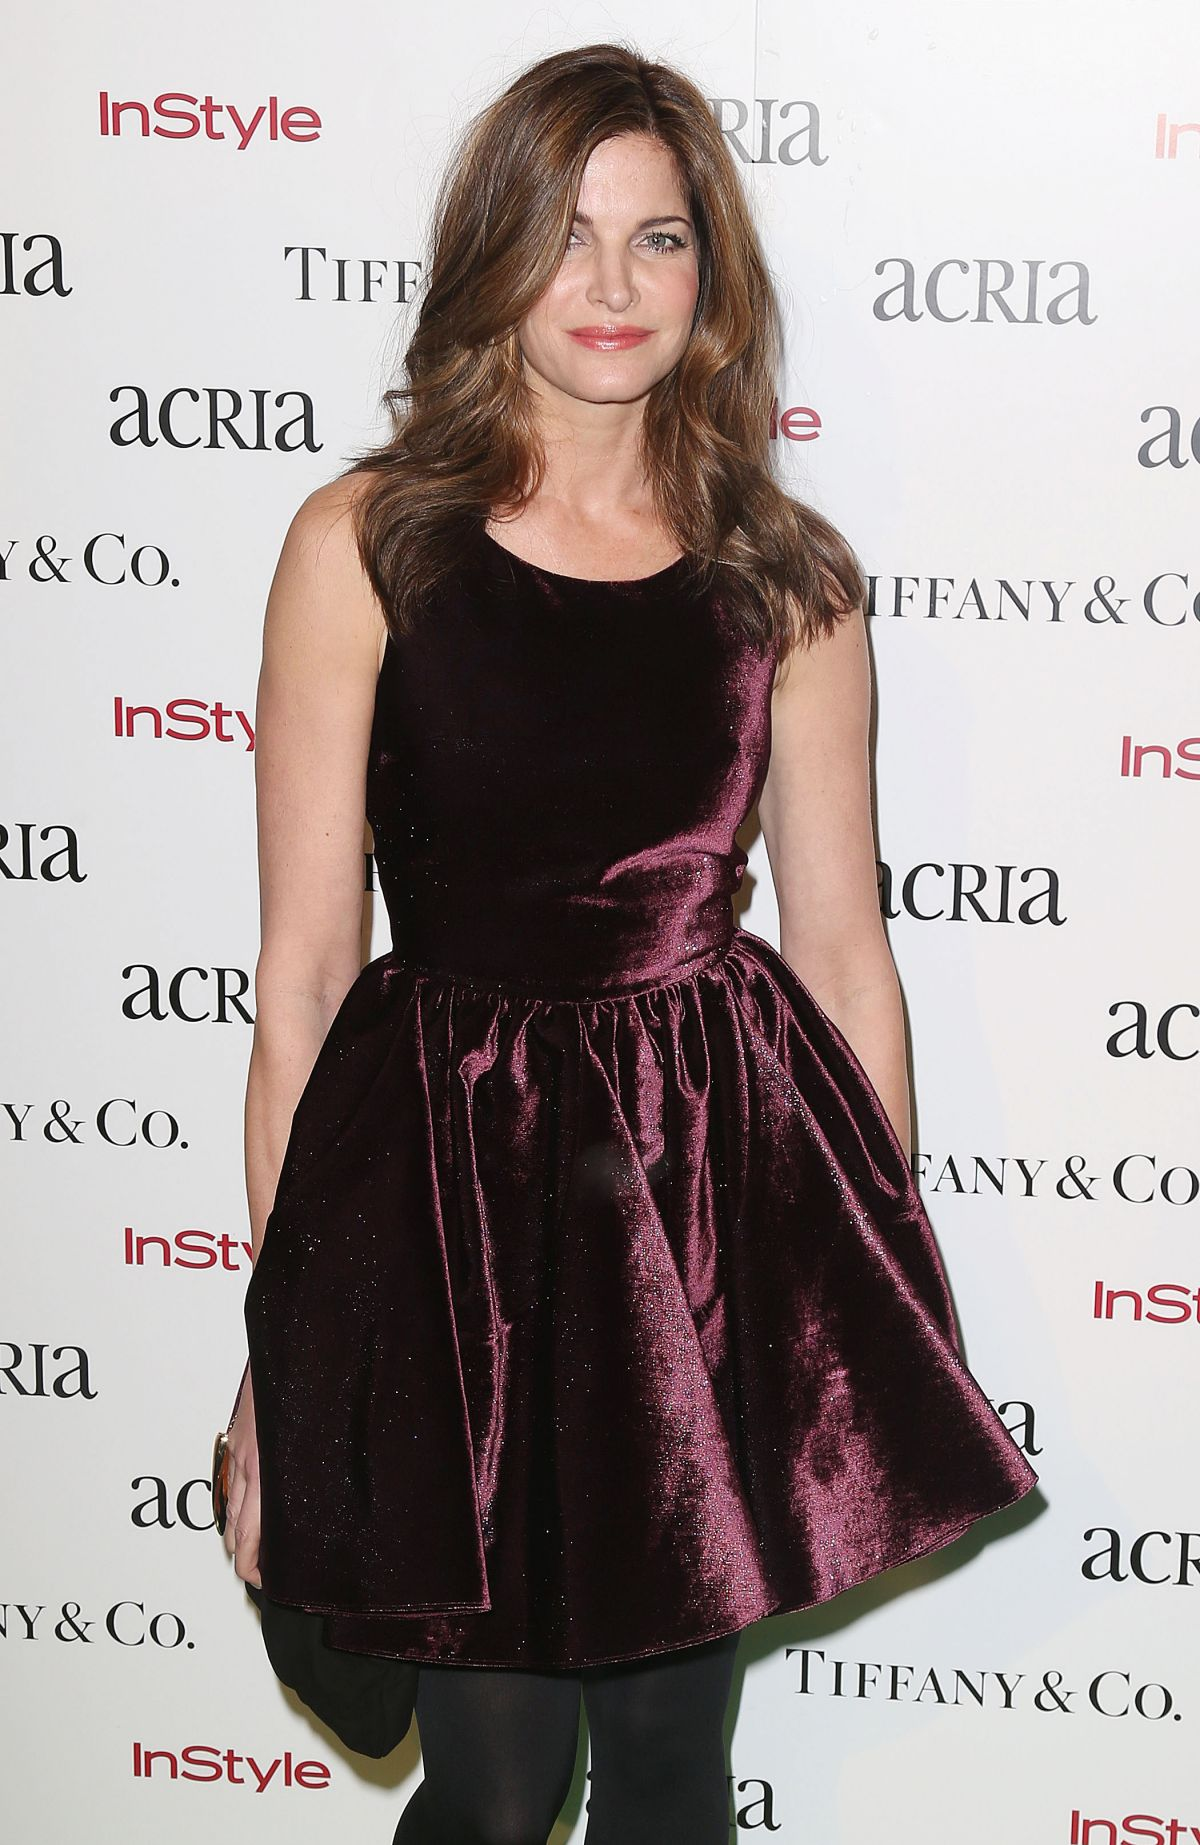 STEPHANIE SEYMOUR at 2014 Acria Holiday Dinner in New York